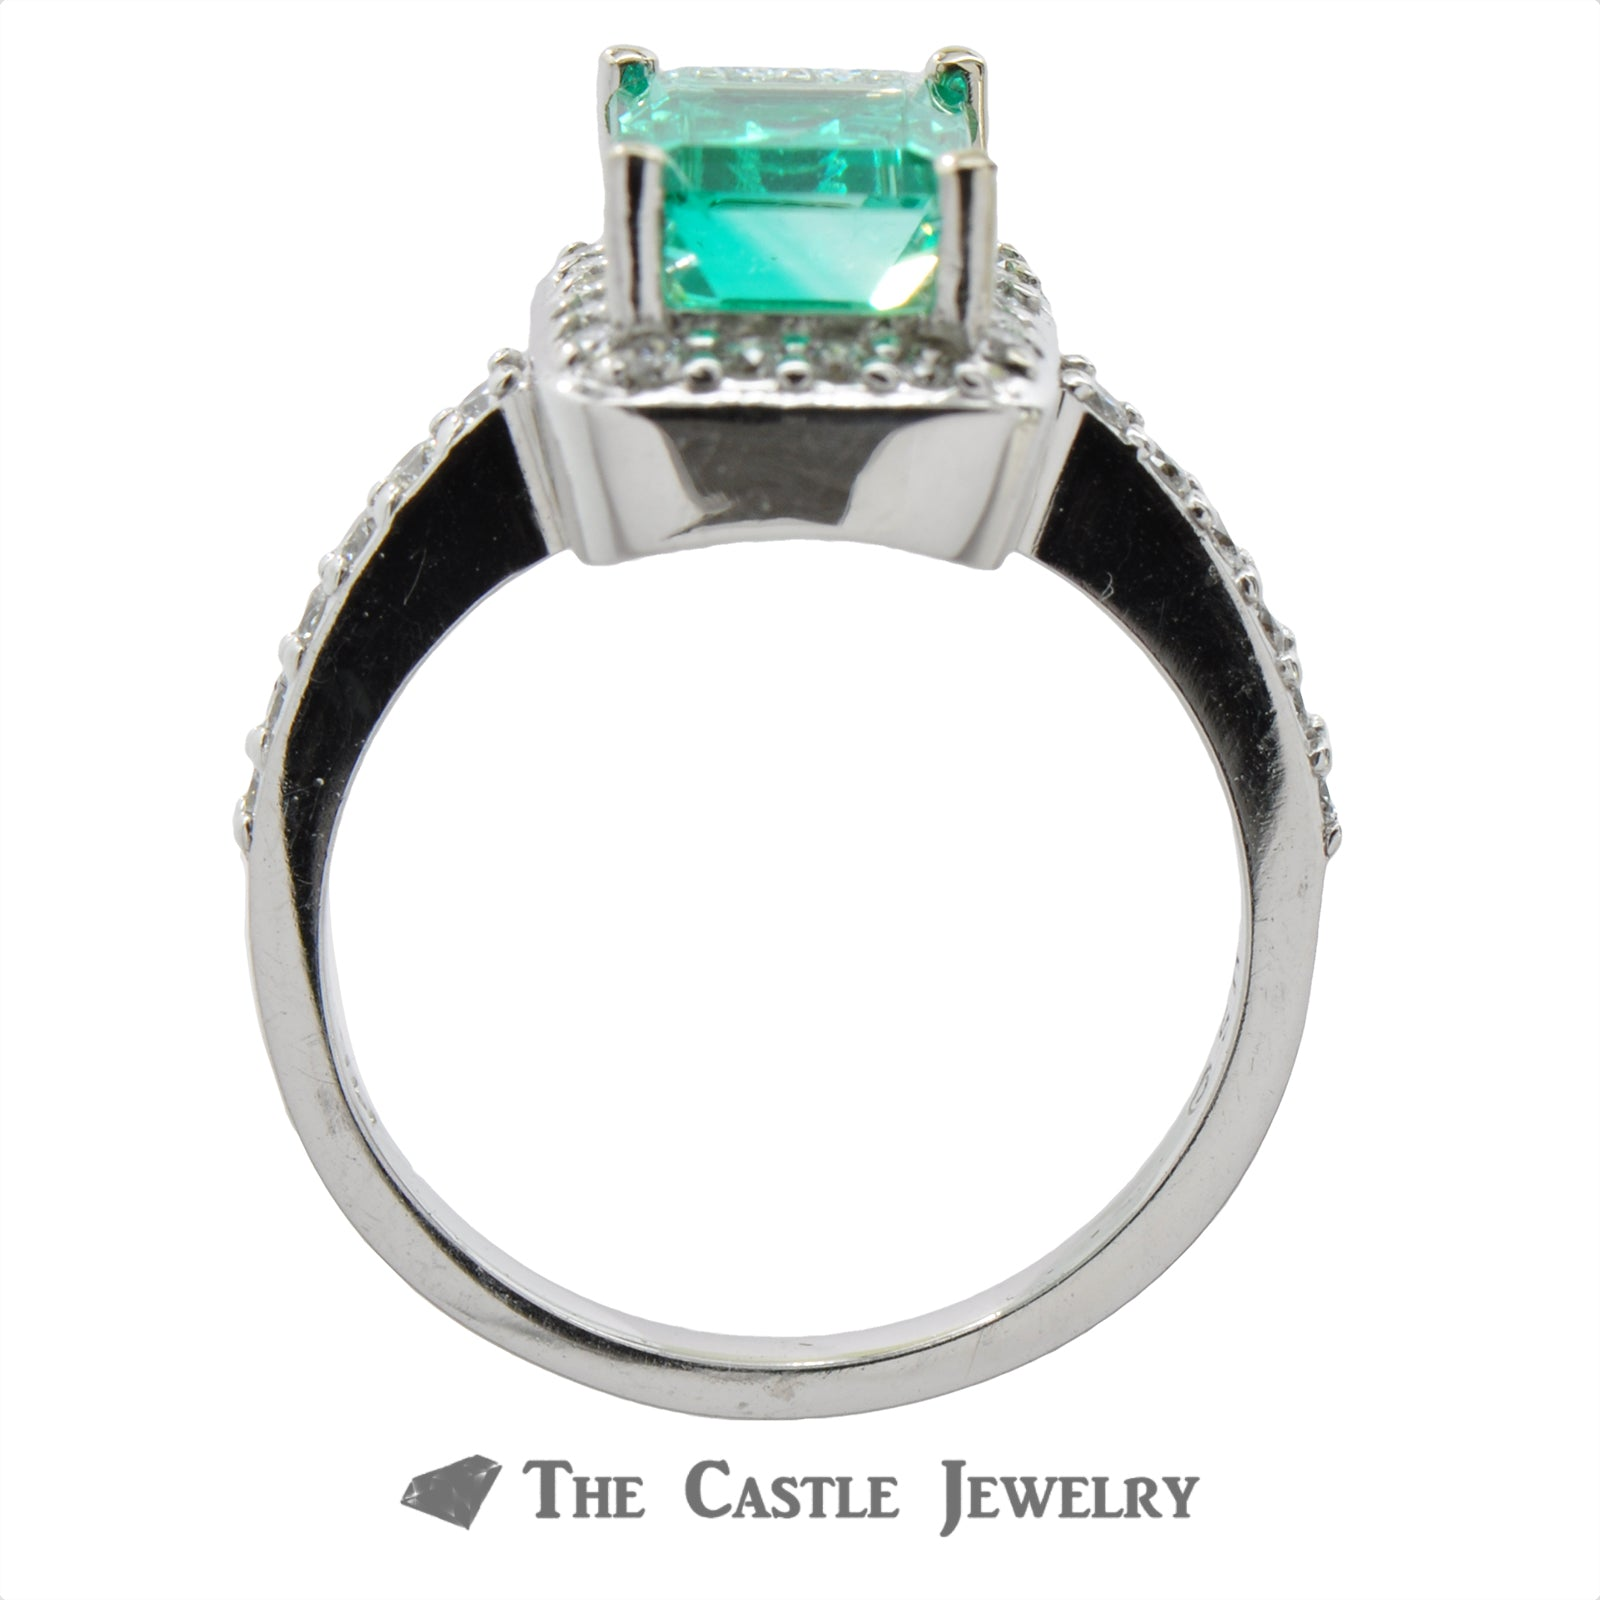 Stunning Emerald Cut Emerald with a Diamond Halo in 14K White Gold-1